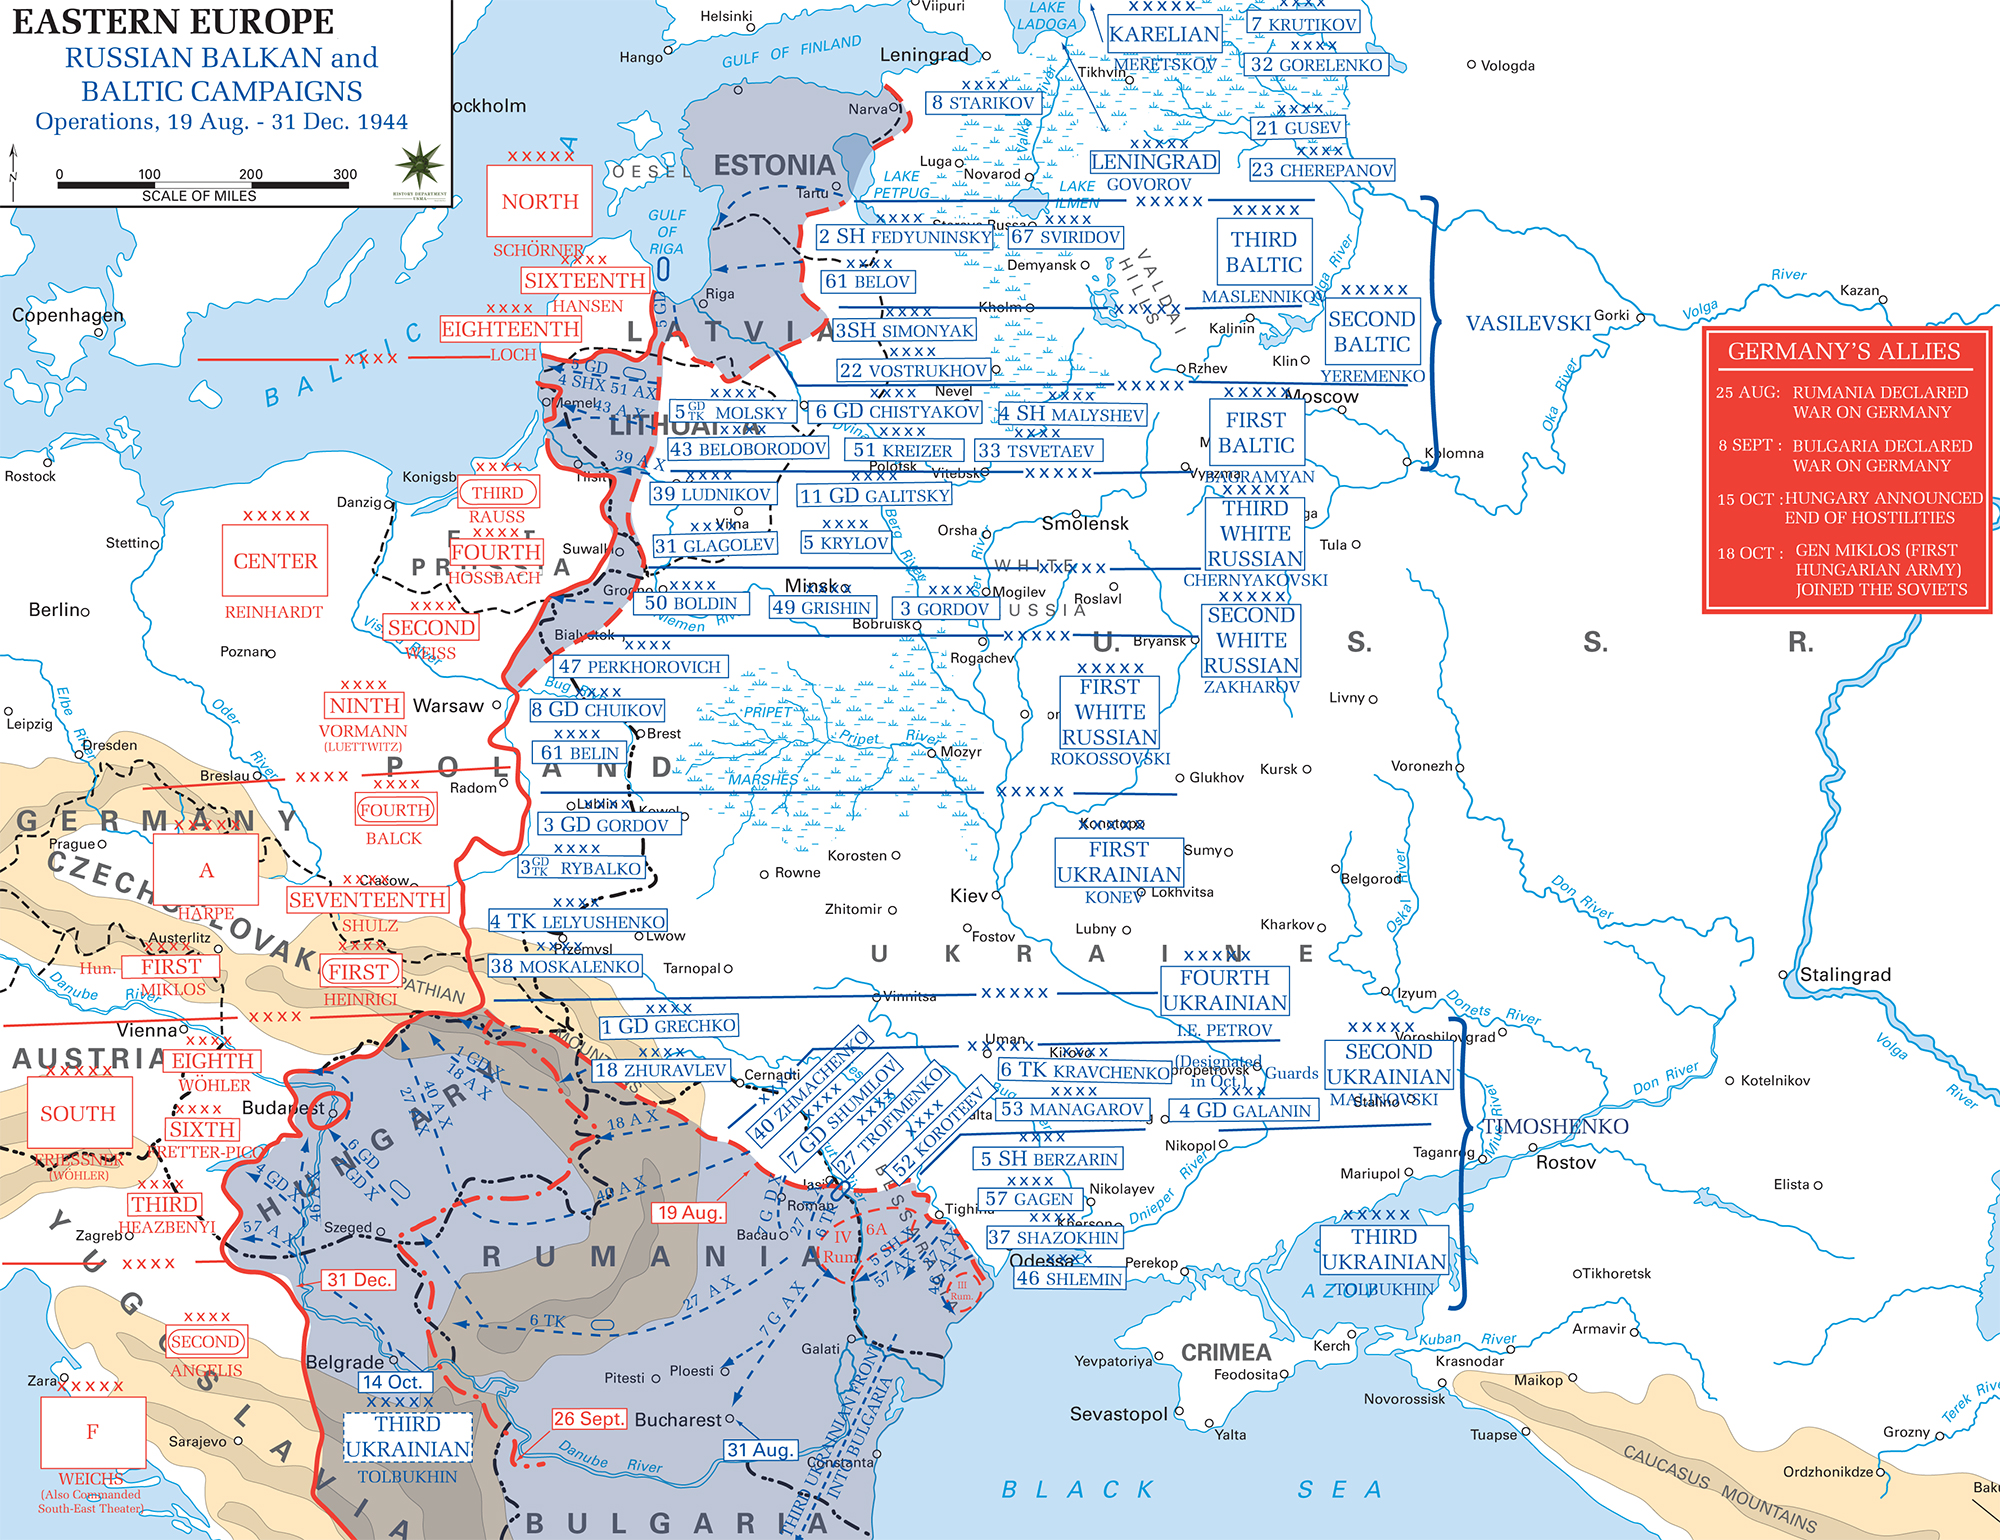 Map of WWII: Russia 1944. Russian Balkan and Baltic Campaigns August 19 - December 31, 1944